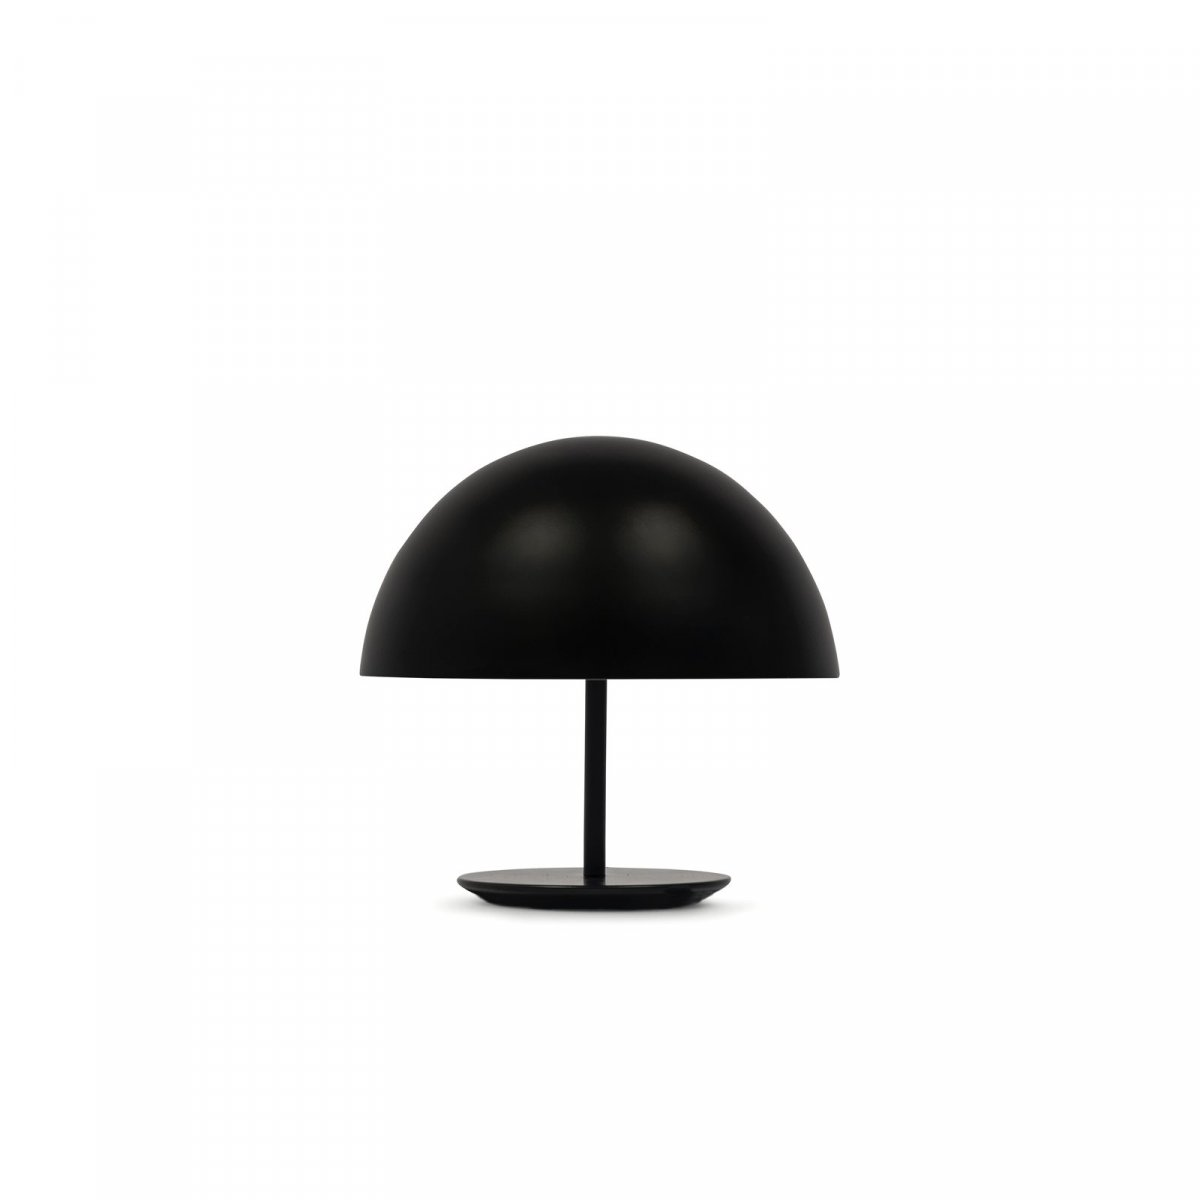 Baby Dome Lamp, black.